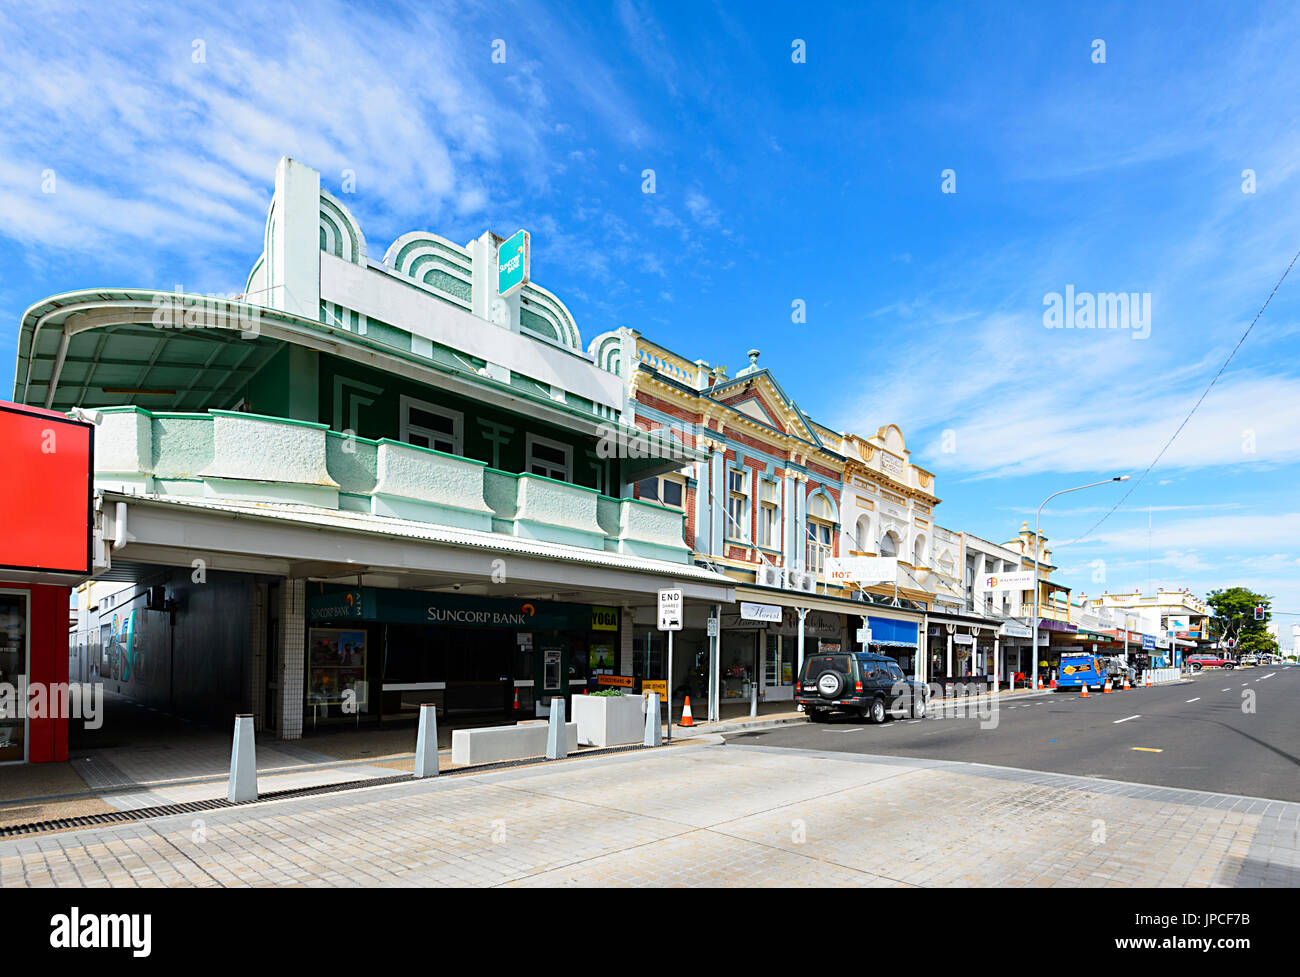 Centro citta', Adelaide Street, Maryborough, Queensland, QLD, Australia Immagini Stock